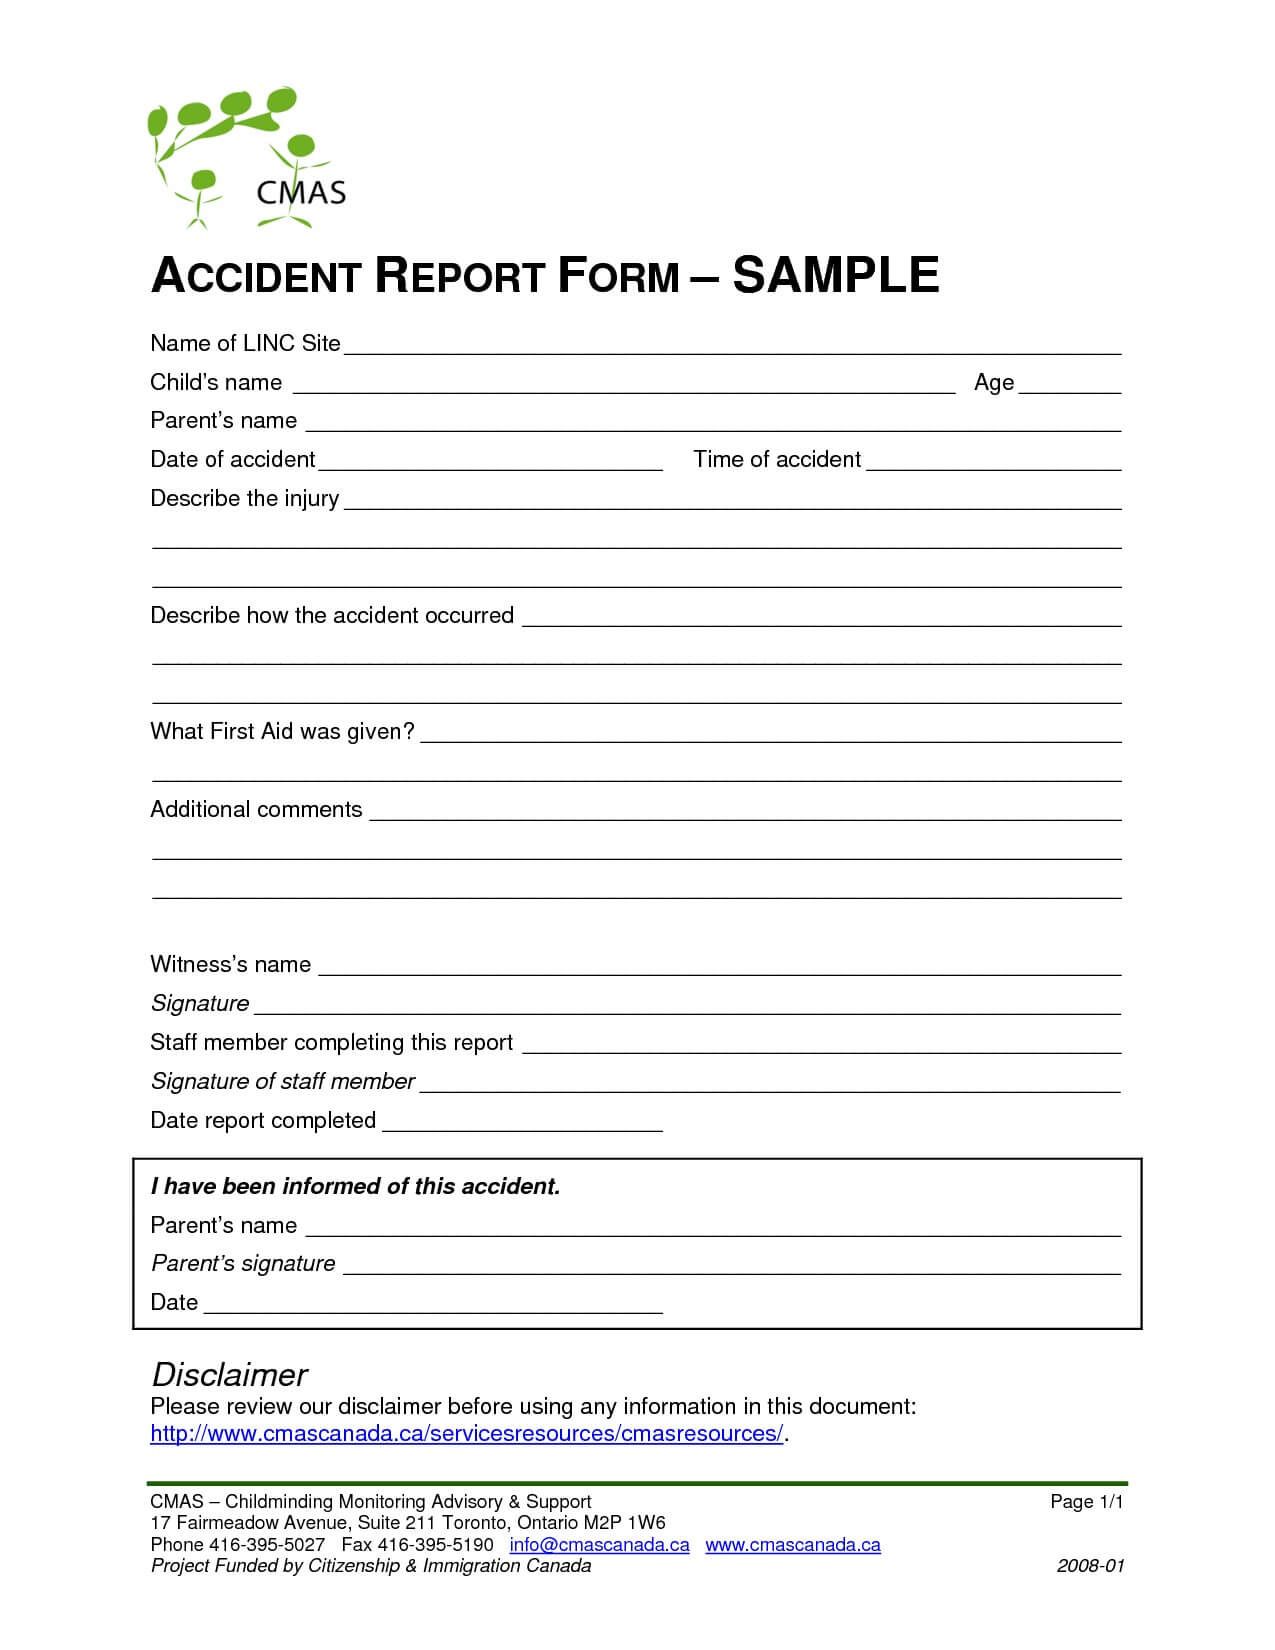 Insurance Incident Report Template - Atlantaauctionco With Insurance Incident Report Template